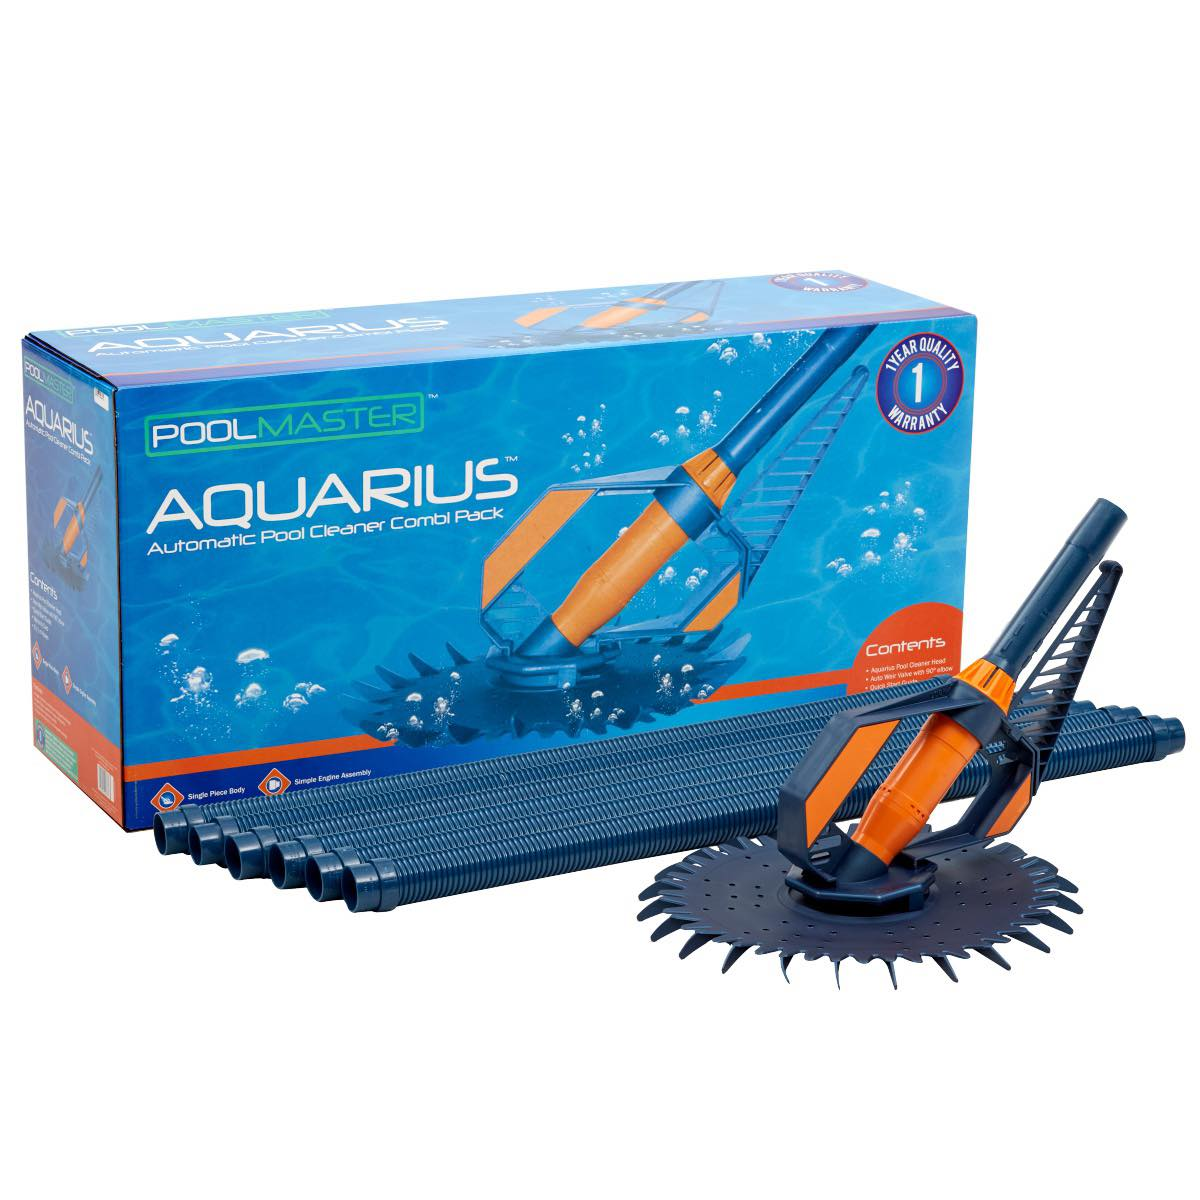 Automatic Pool Cleaner $140